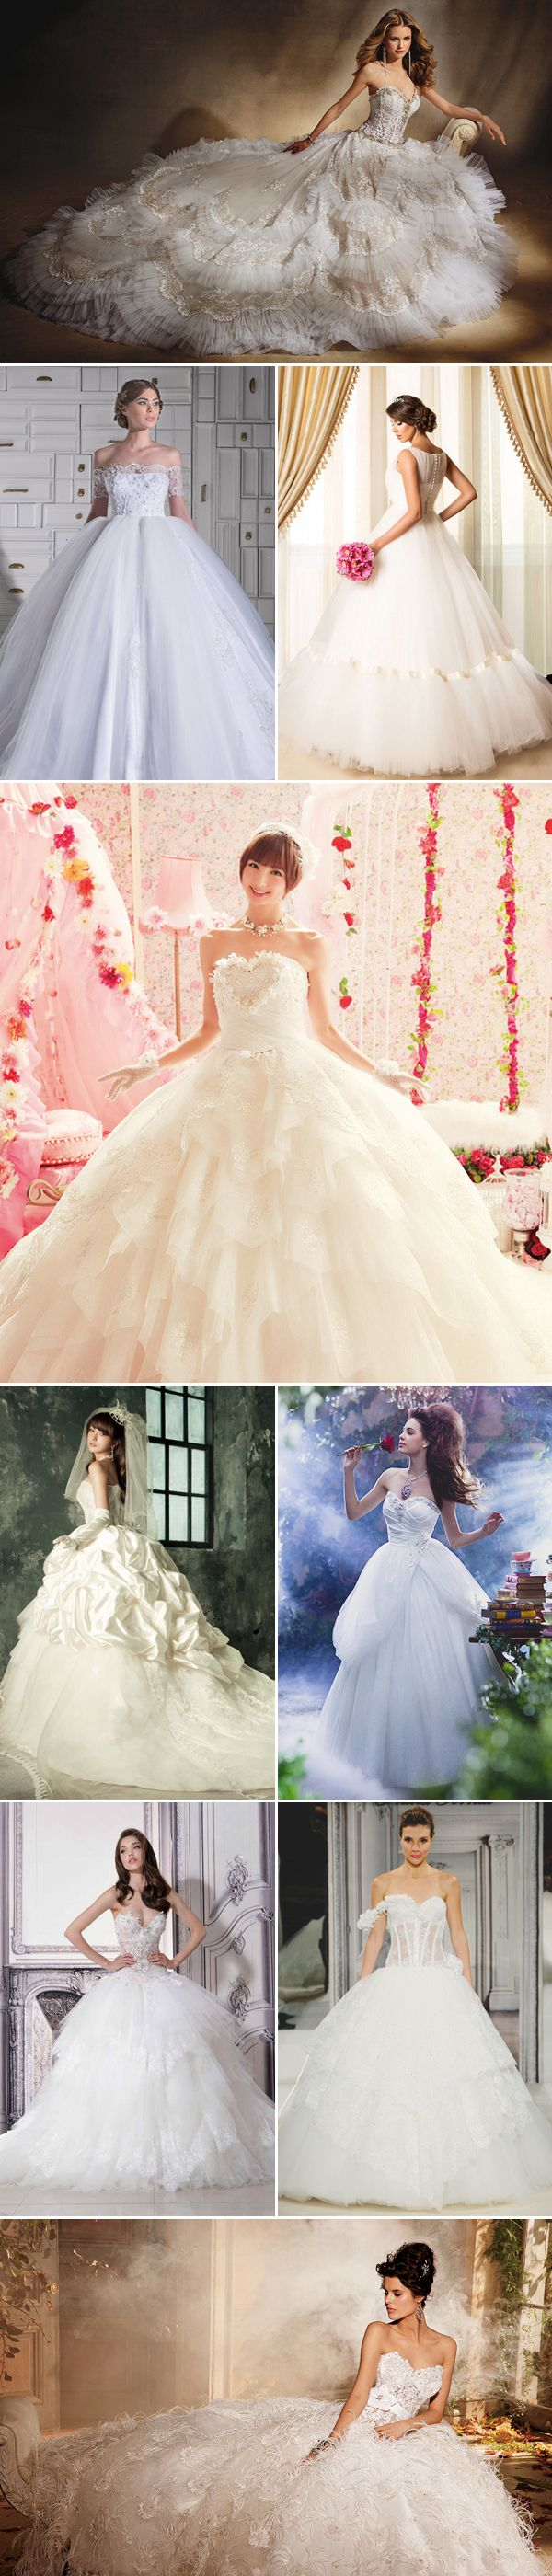 37 Princess Royal Ball Gowns with a touch of Glam! Dreamy Ball Gown